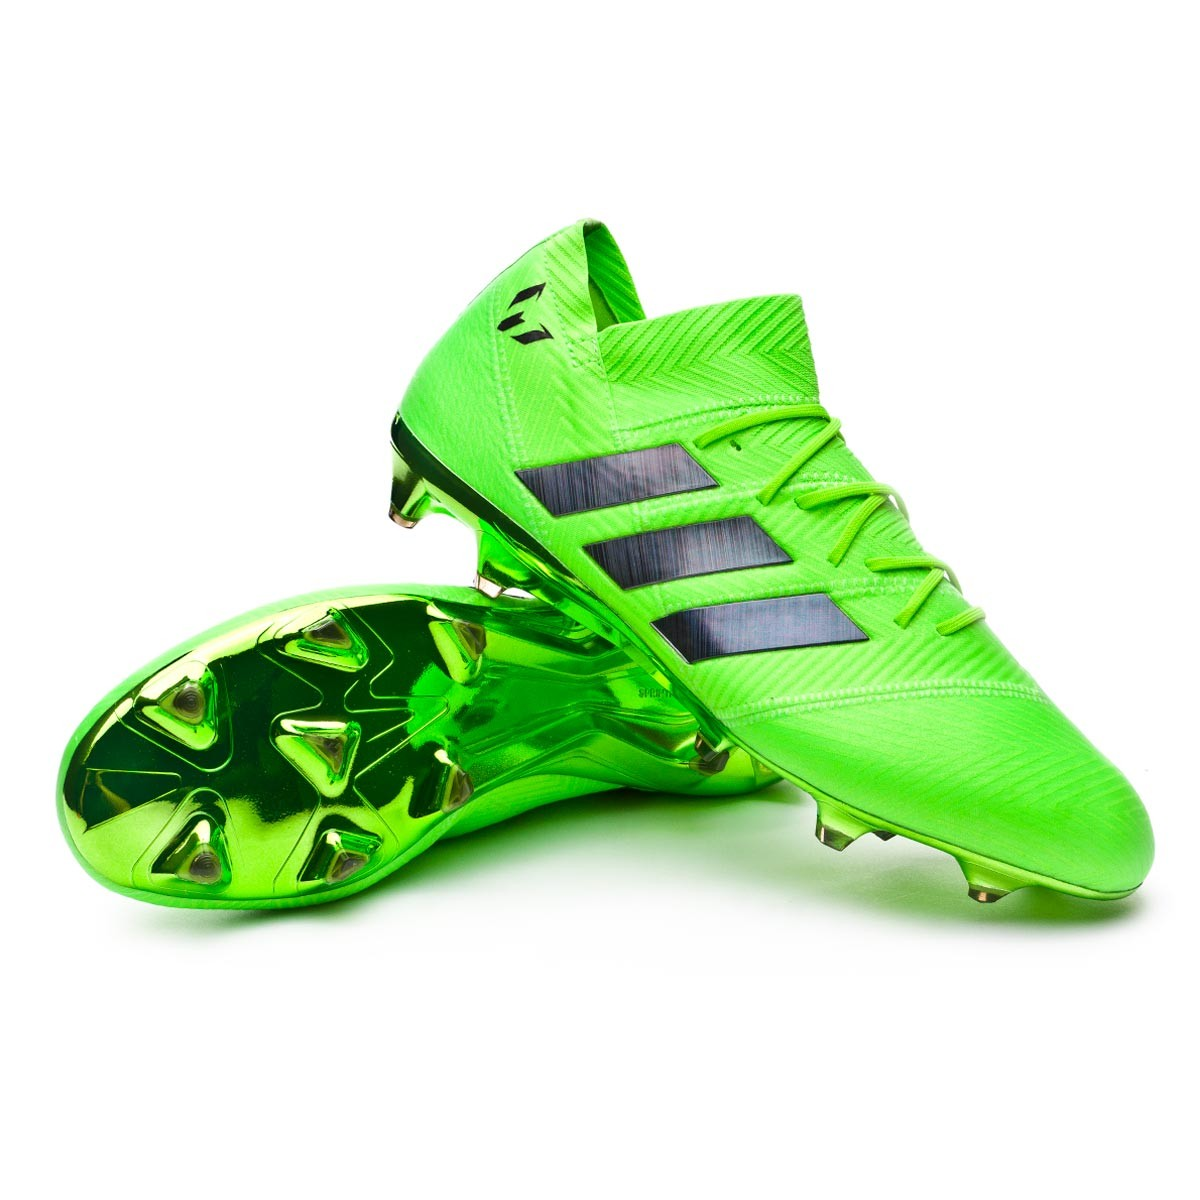 6e19a174e29 Football Boots adidas Nemeziz Messi 18.1 FG Solar green-Black ...